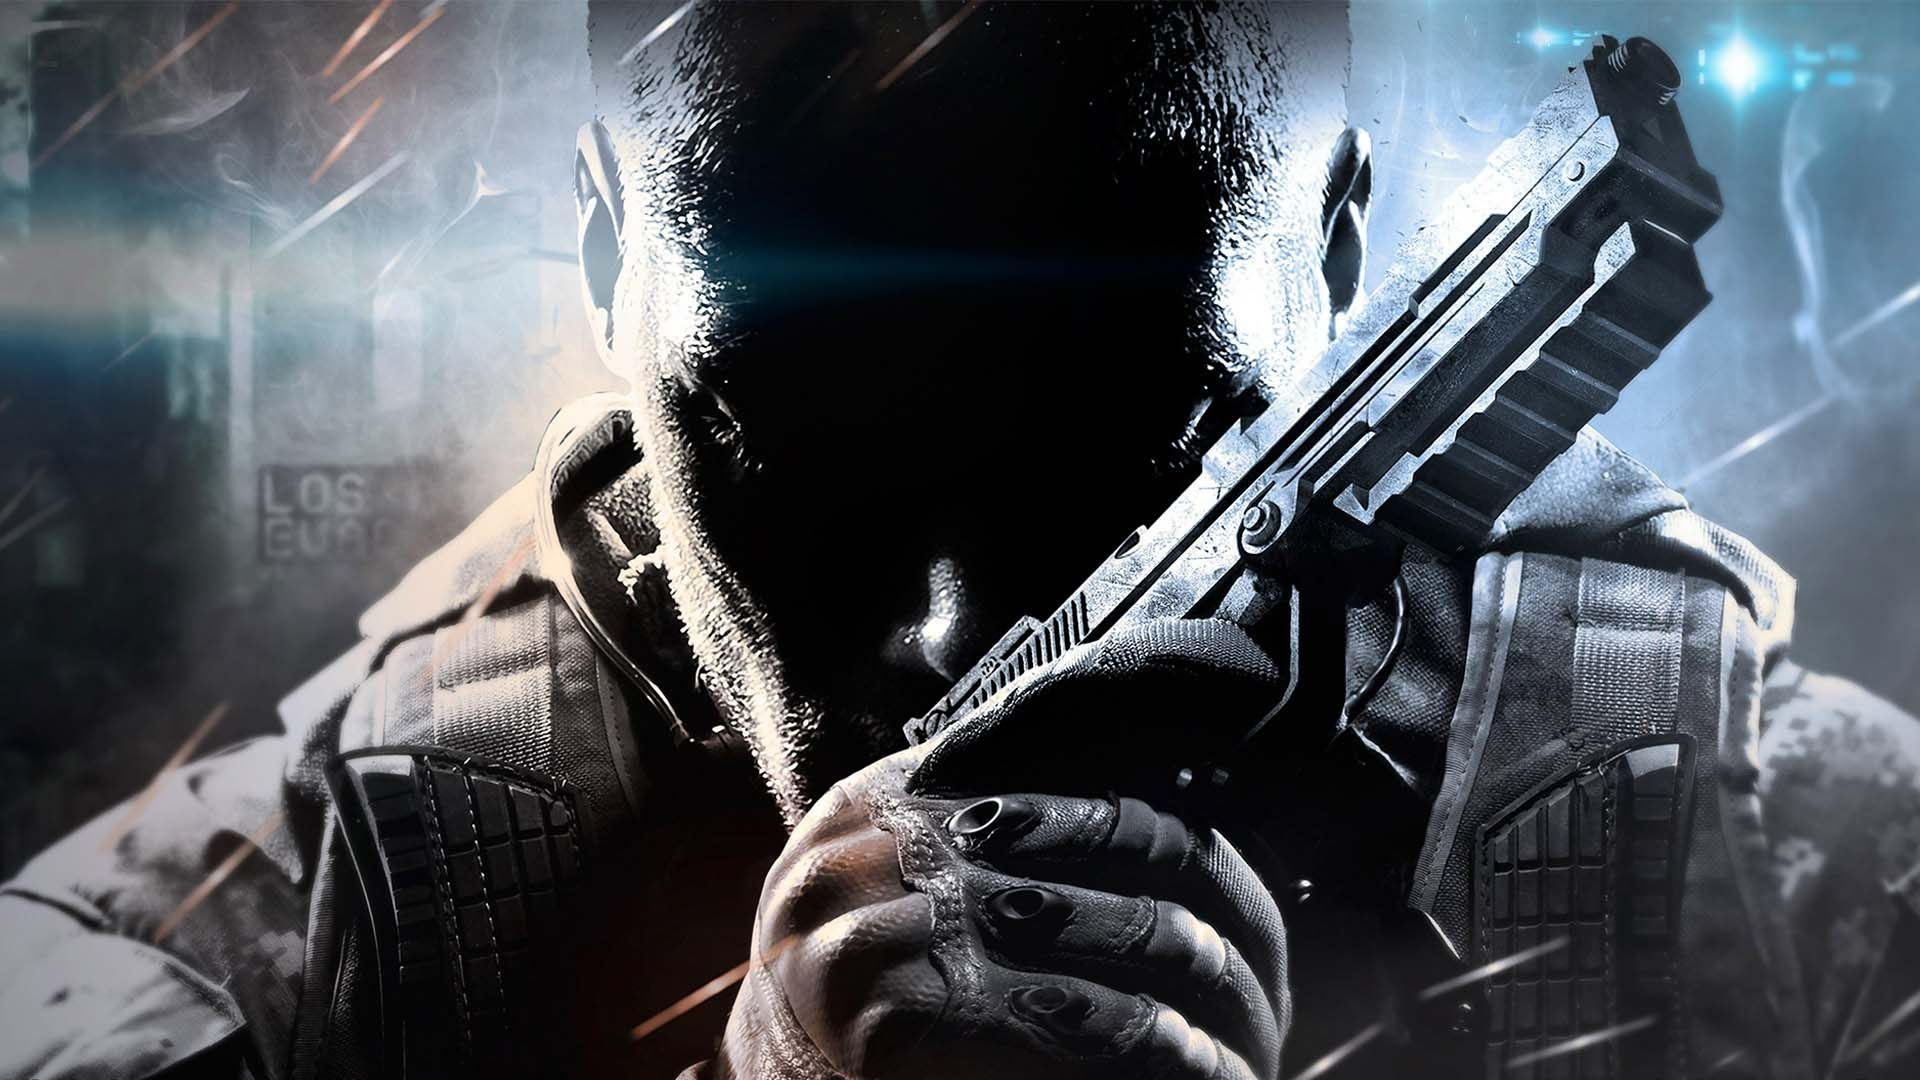 Search Results For Awesome Black Ops 2 Wallpapers Adorable Wallpapers